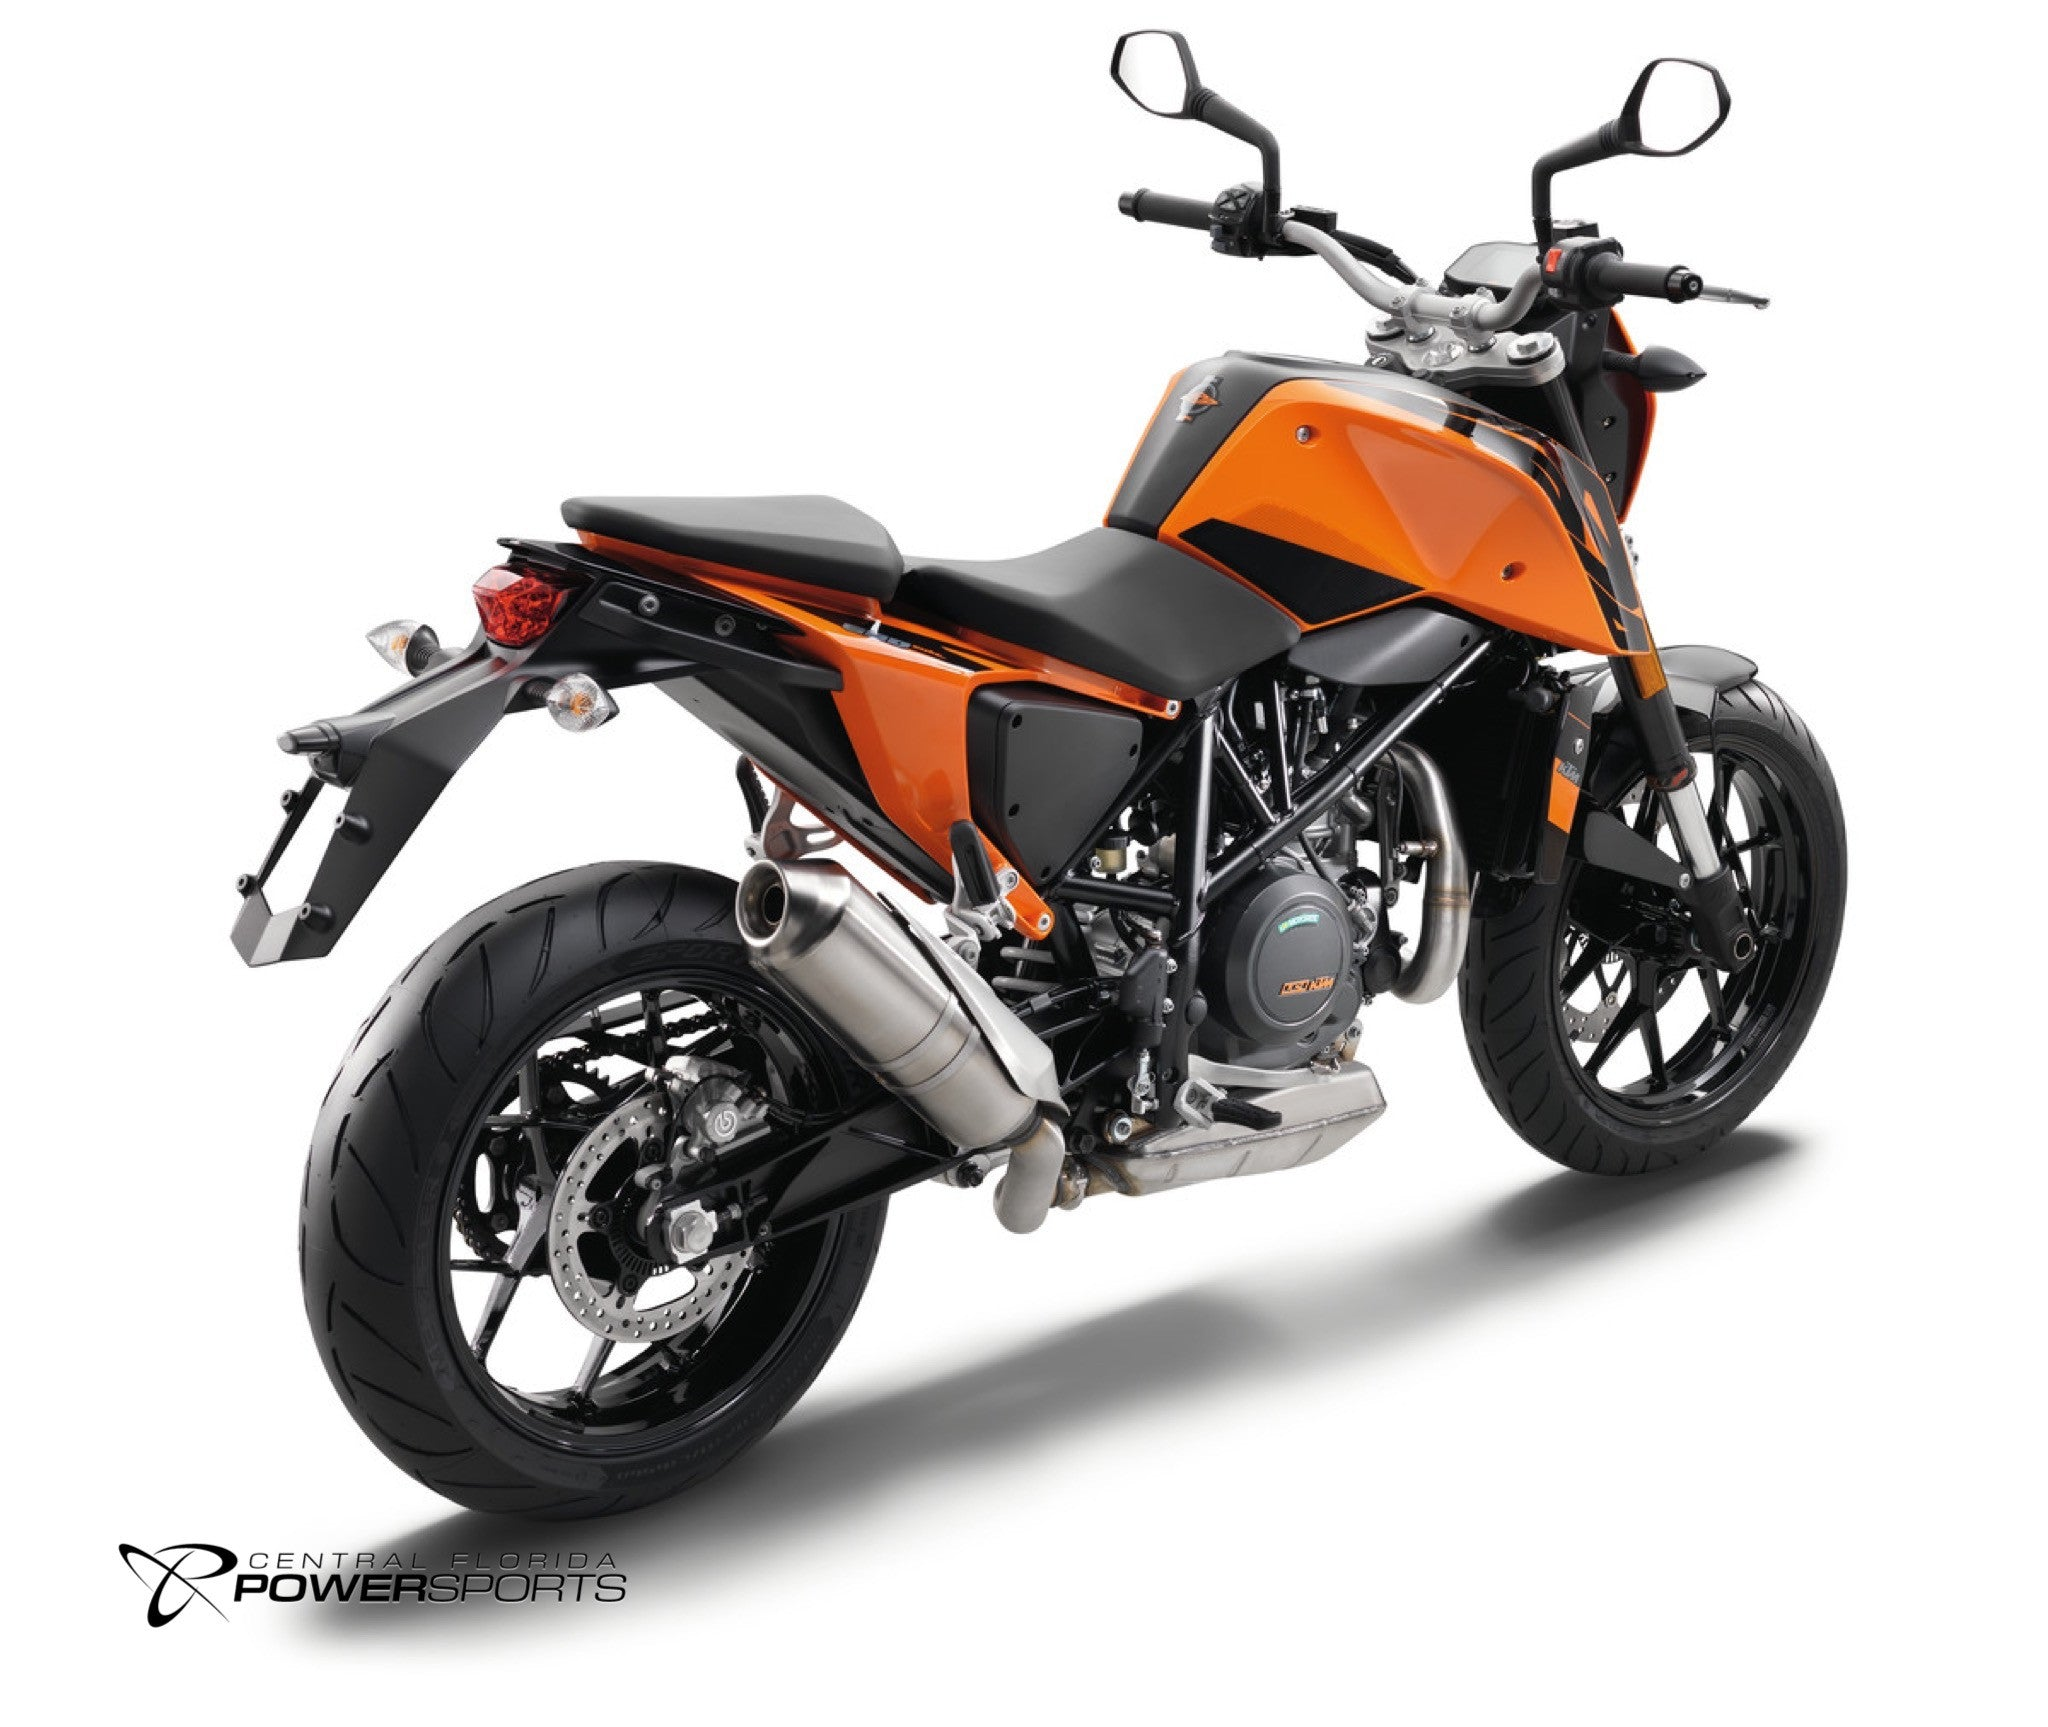 New 2017 KTM 390 Duke ABS Standard Motorcycle For Sale - Central ...